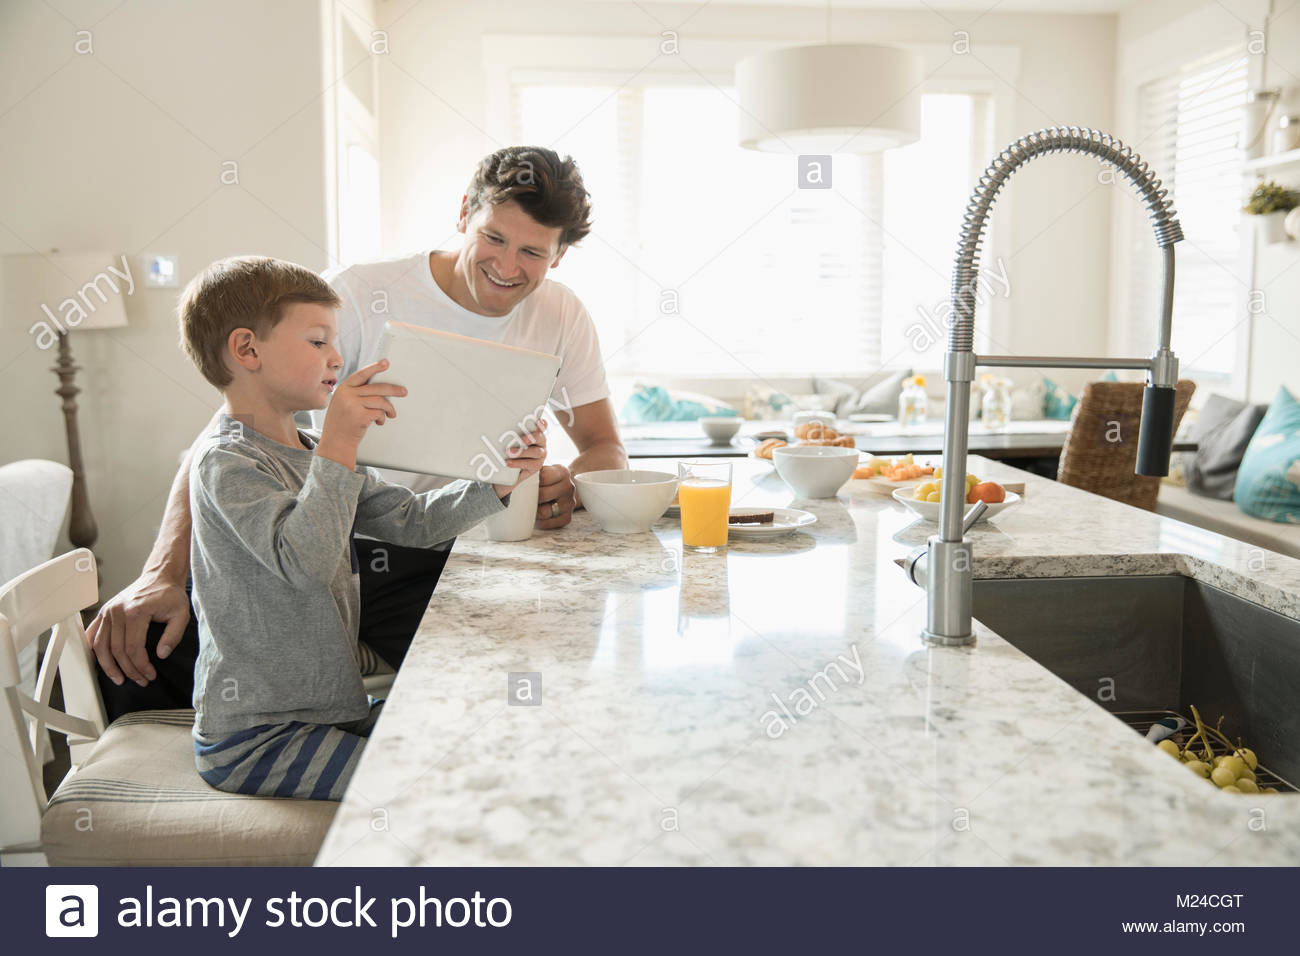 Father and son eating breakfast and using digital tablet at kitchen island - Stock Image